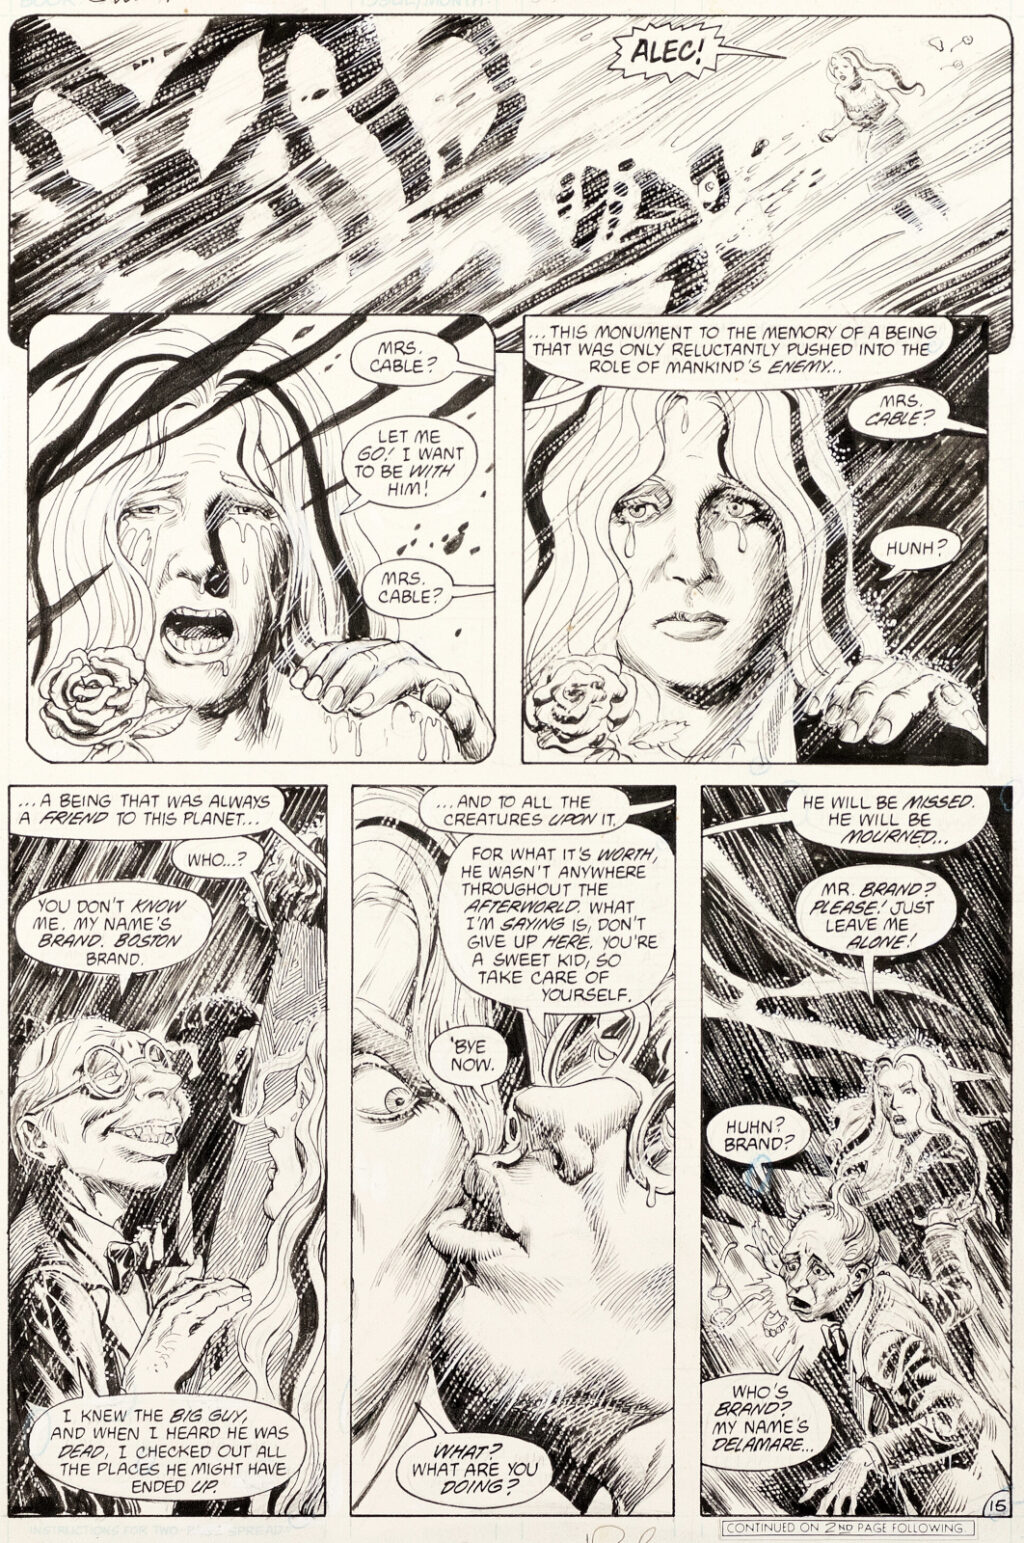 Swamp Thing issue 55 Pages 15 by Rick Veitch and Alfredo Alcala